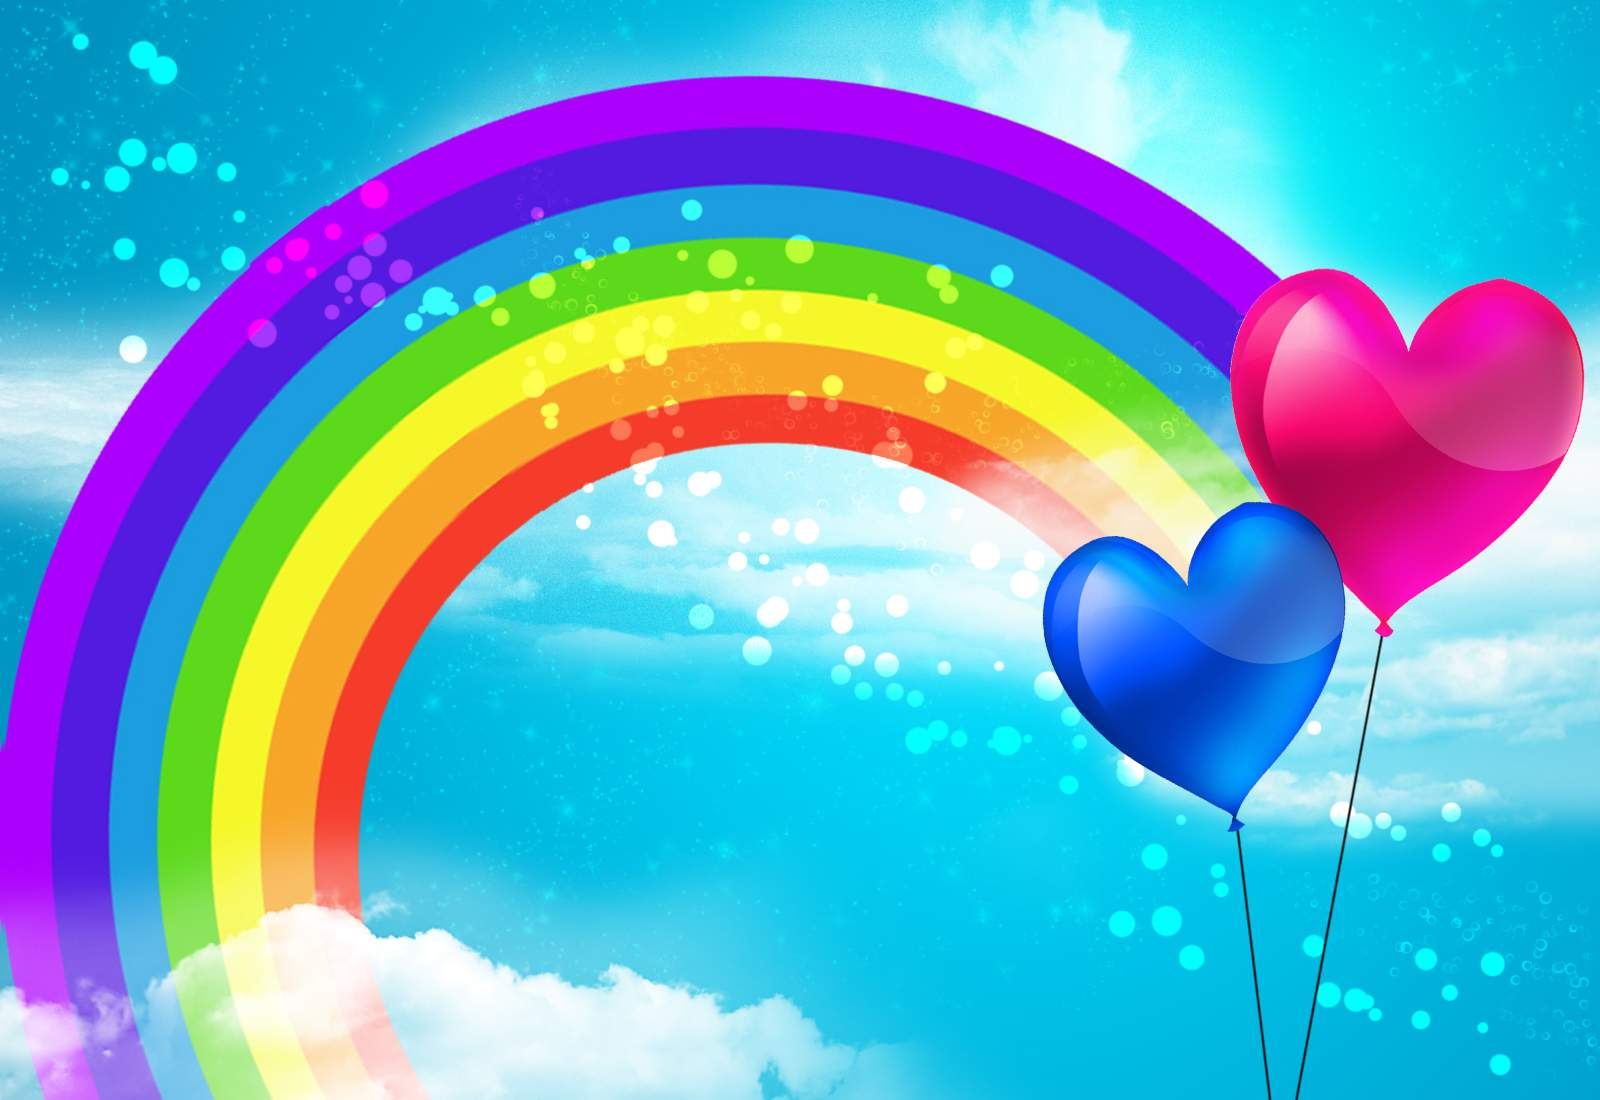 Rainbow Picture Baloons Wallpaper